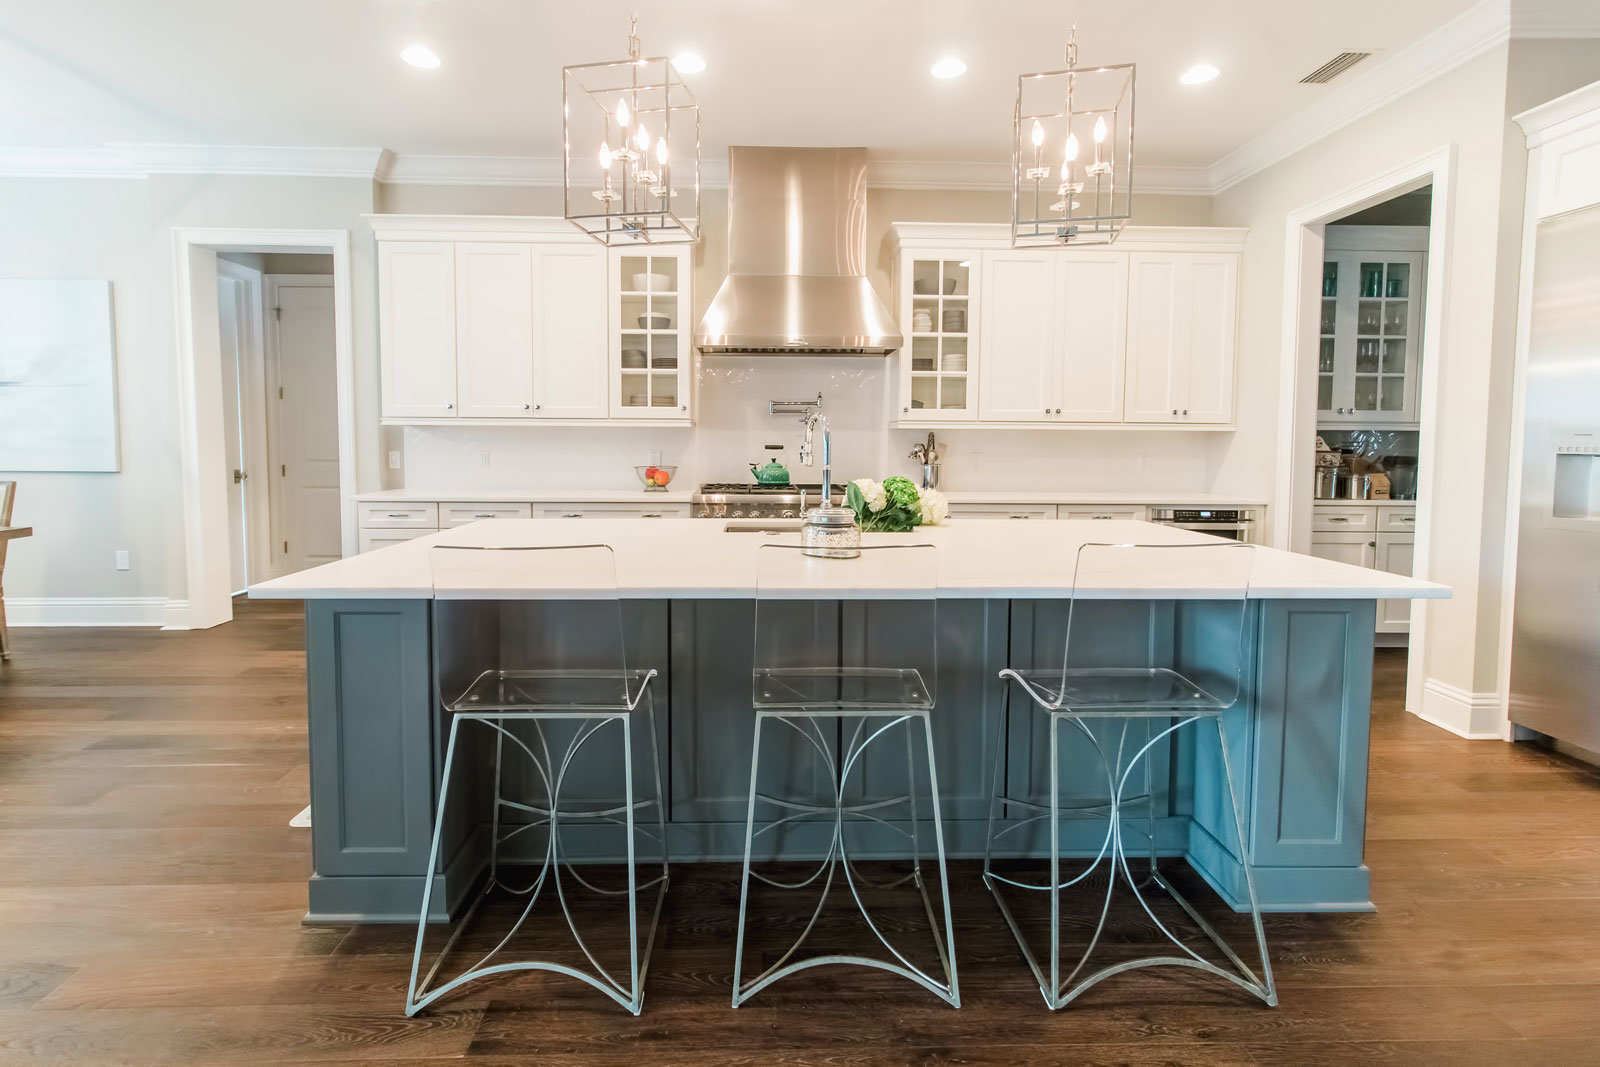 Ashley-Gaughan-Interiors-Sunset-Park-Kitchen